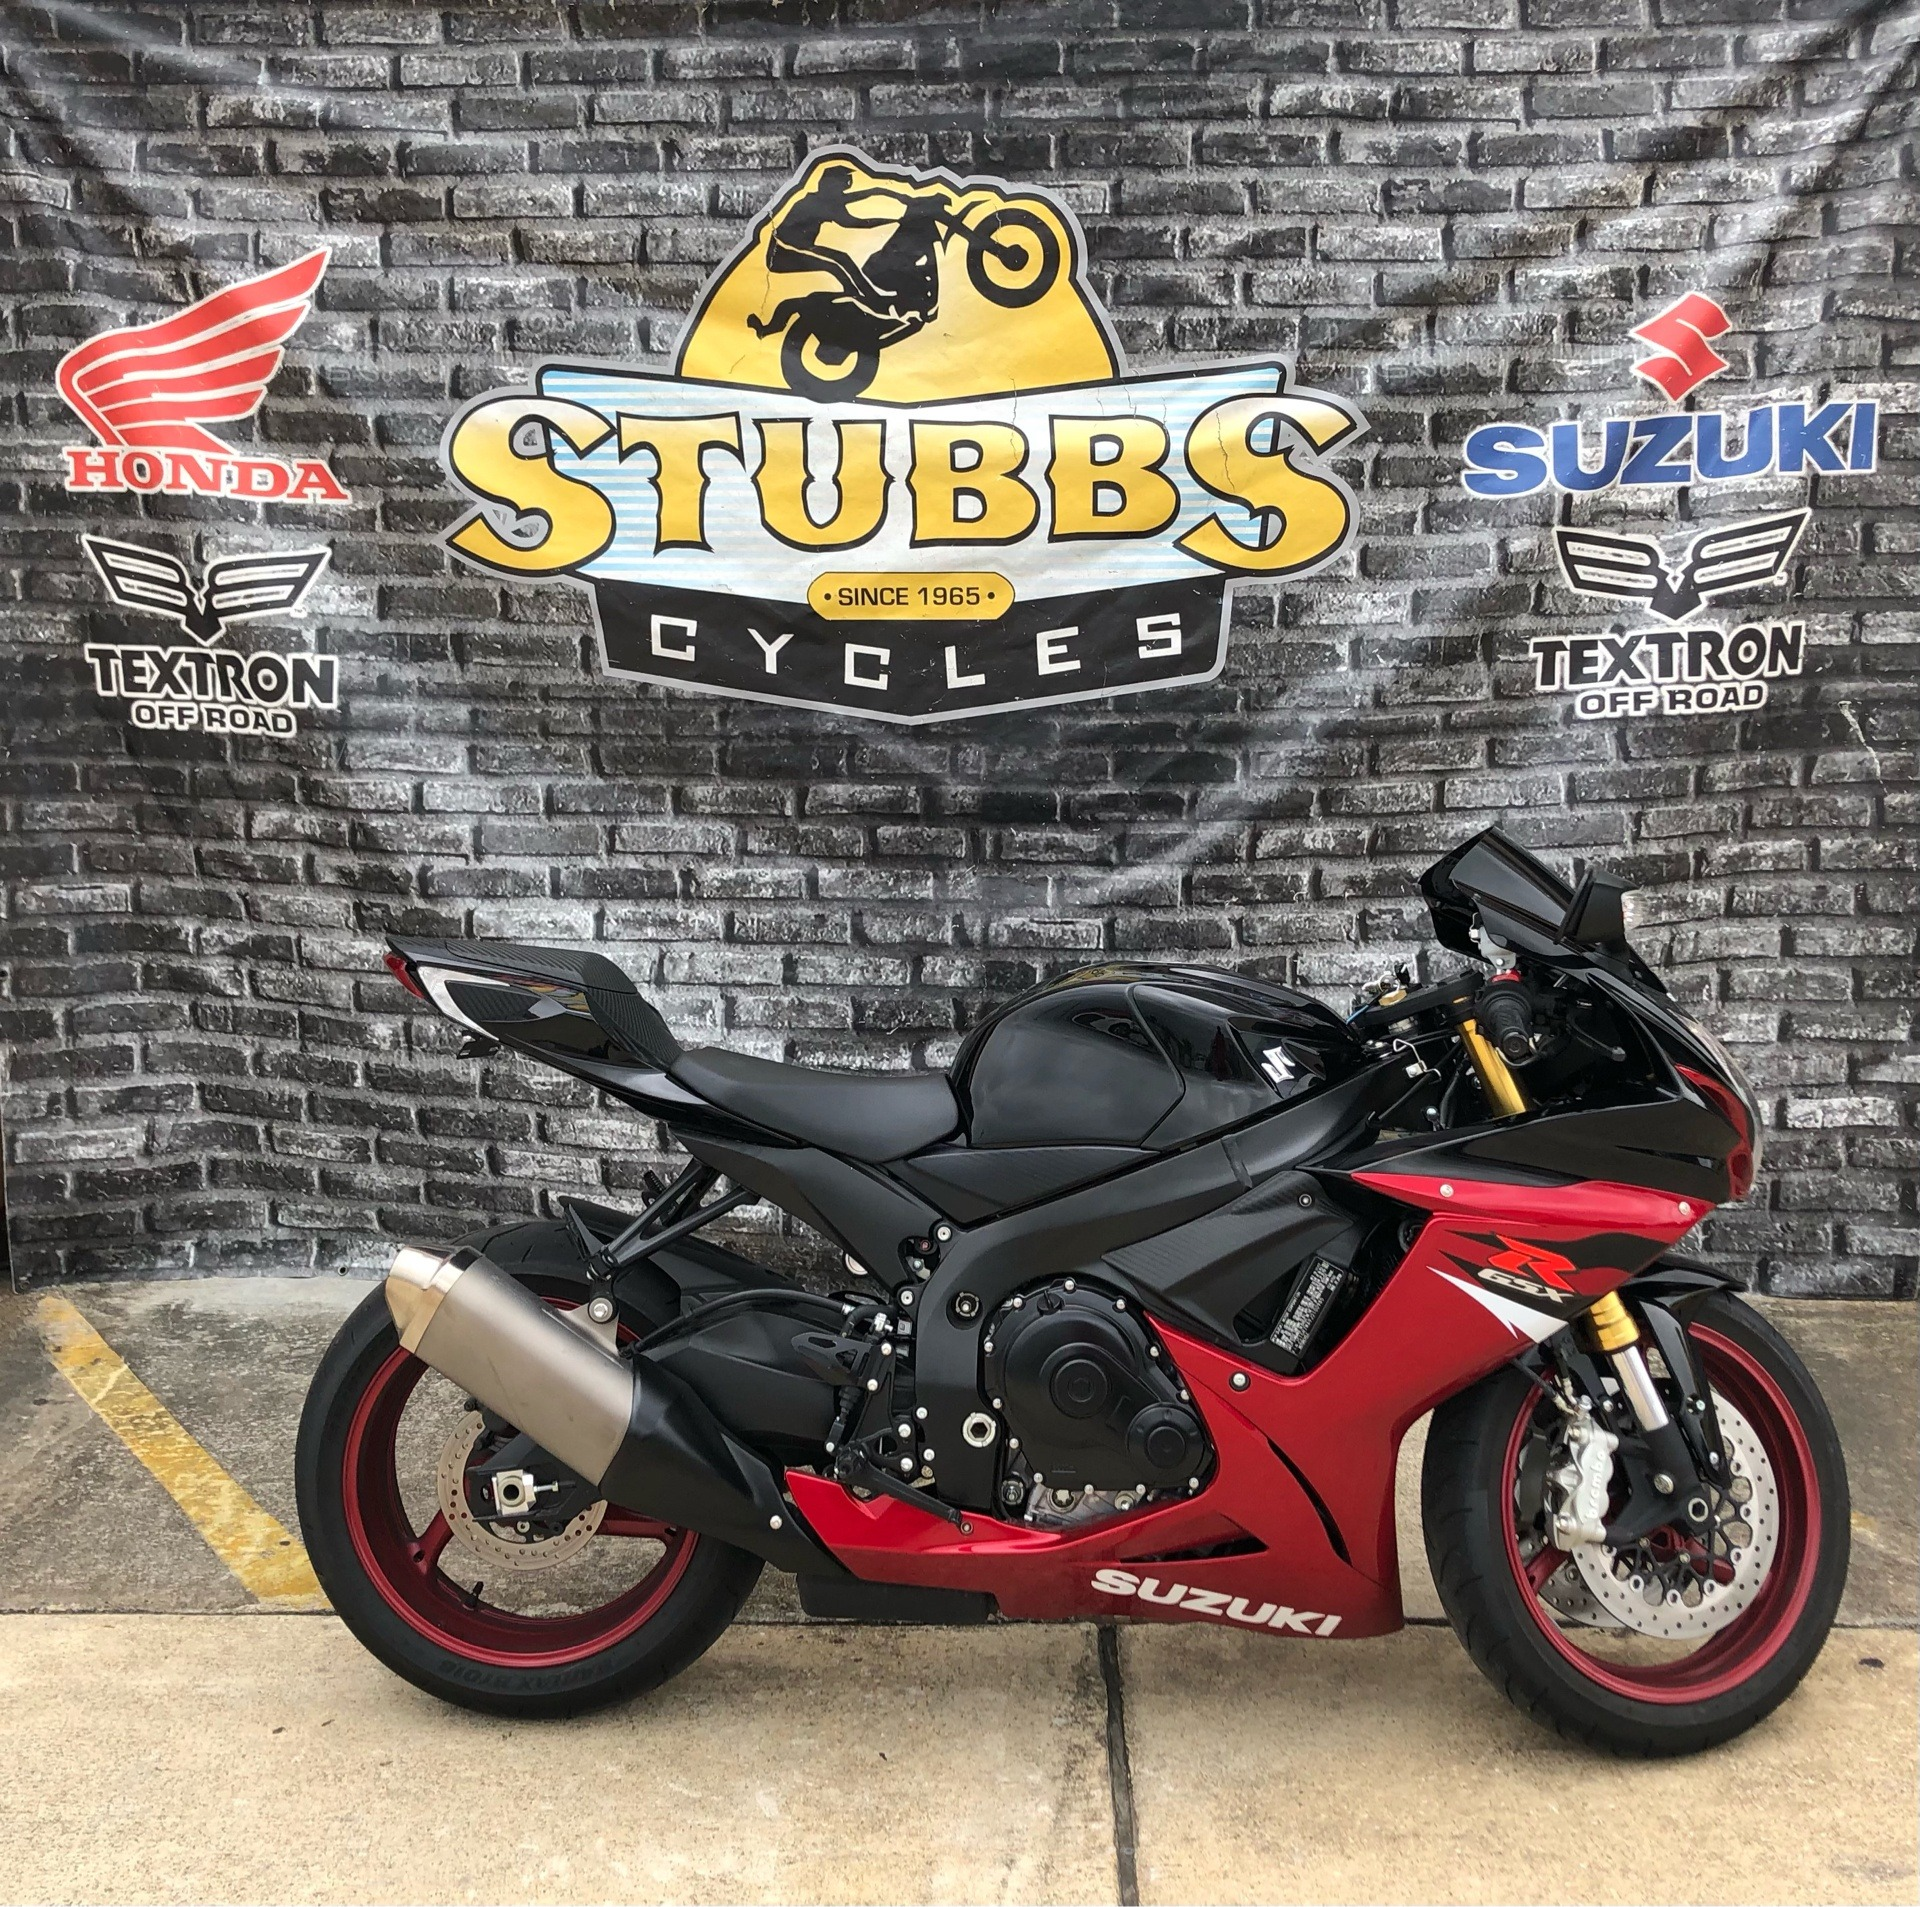 2018 Suzuki GSX-R750 in Houston, Texas - Photo 1